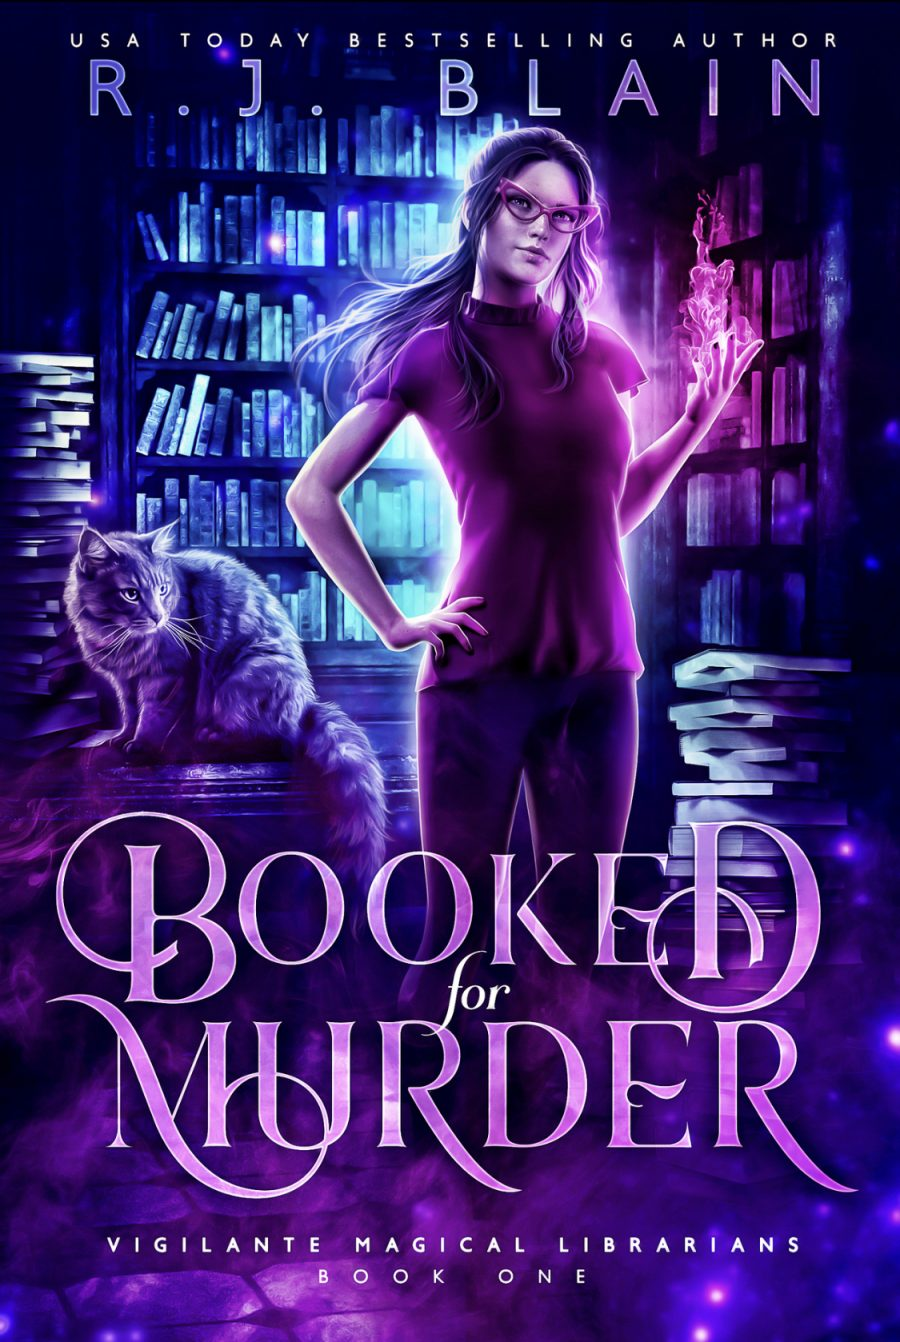 Booked for Murder (Vigilante Magical Librarians - Book 1) by R.J. Blain - A Book Review #NewSeries #UF #UrbanFantasy #NotKU